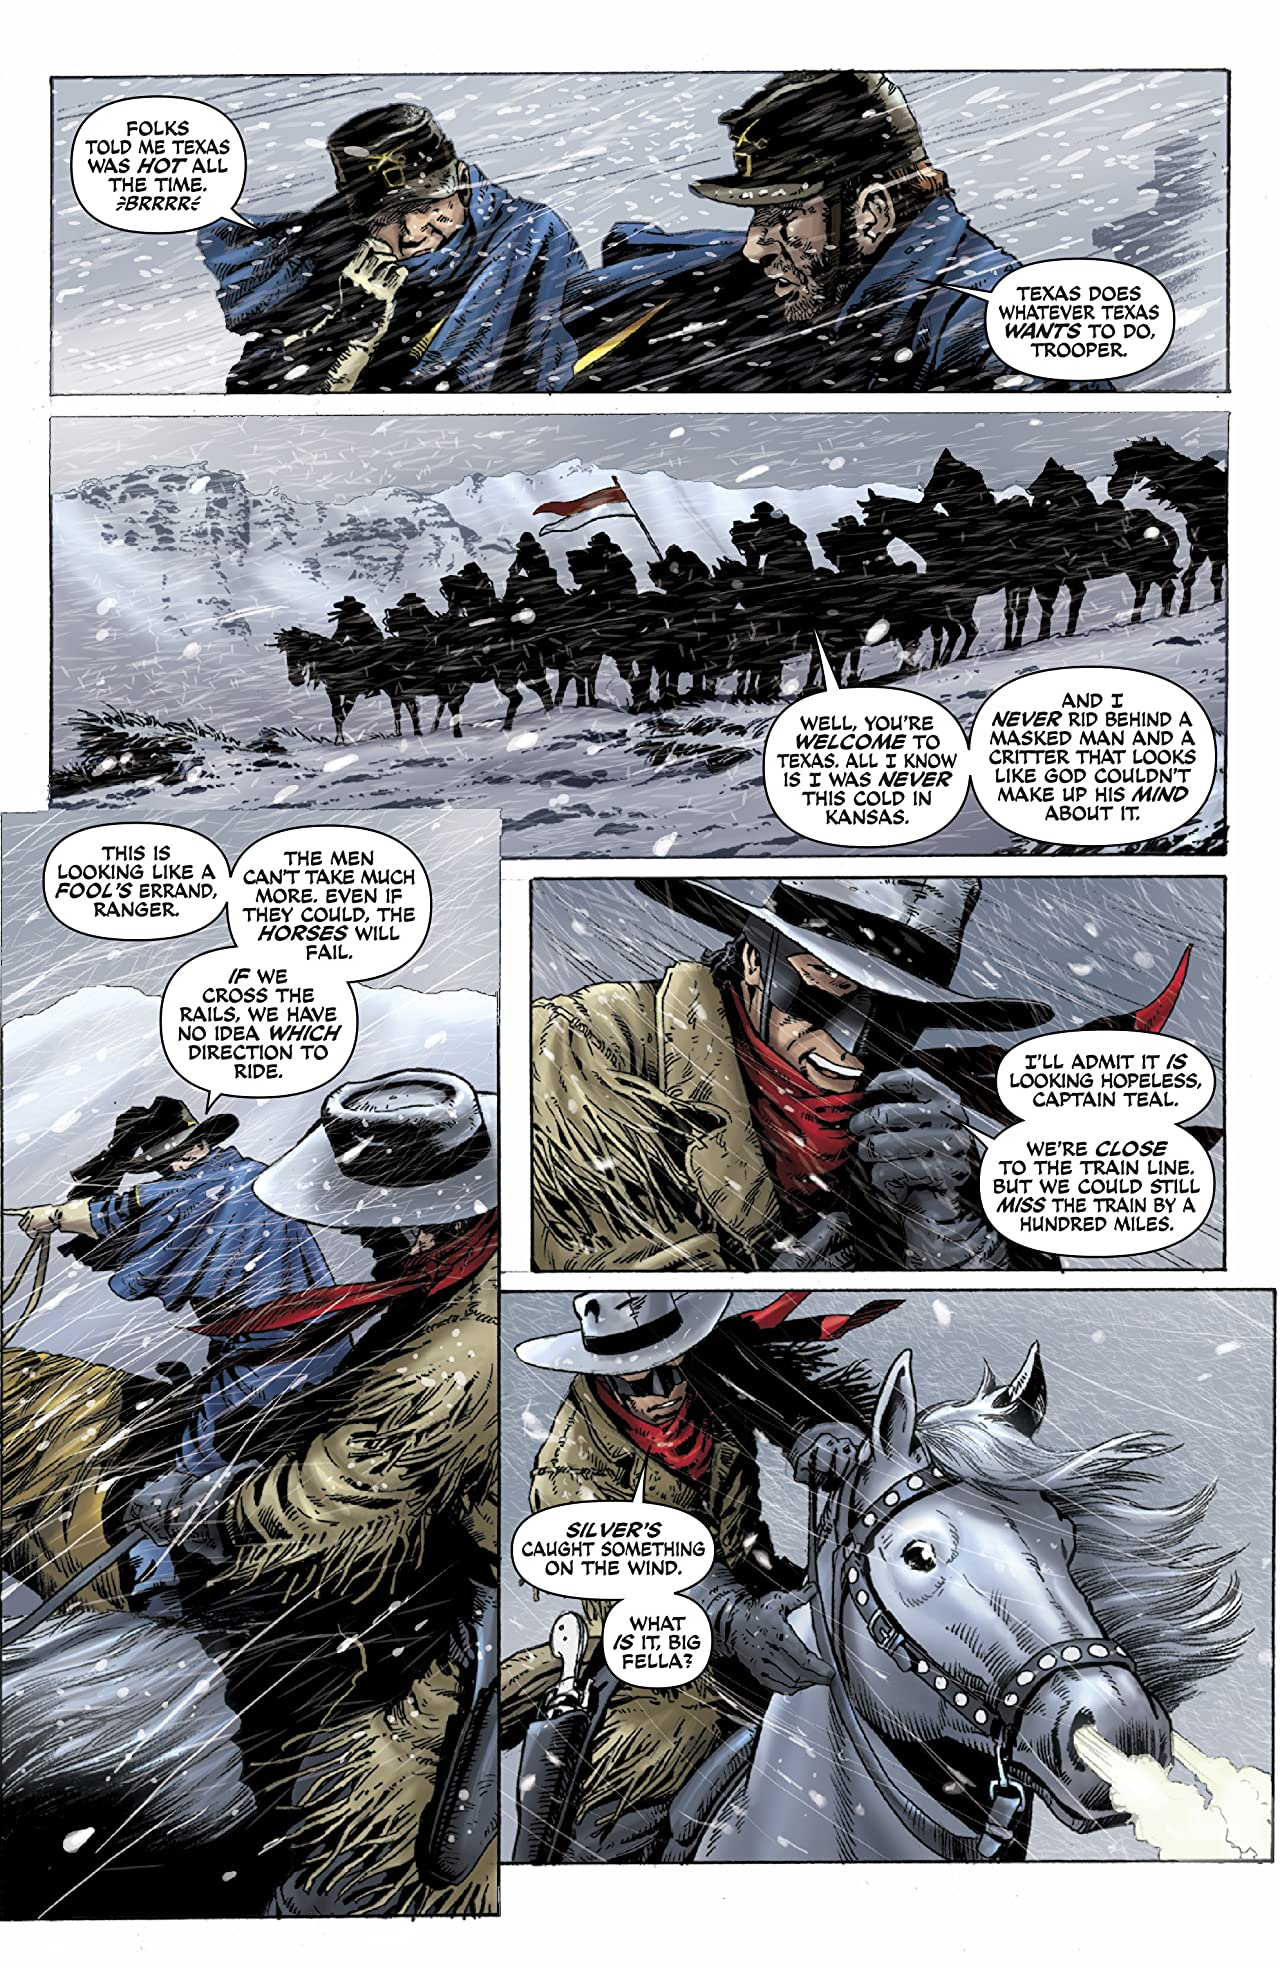 The Lone Ranger: Snake Of Iron #4 (of 4)